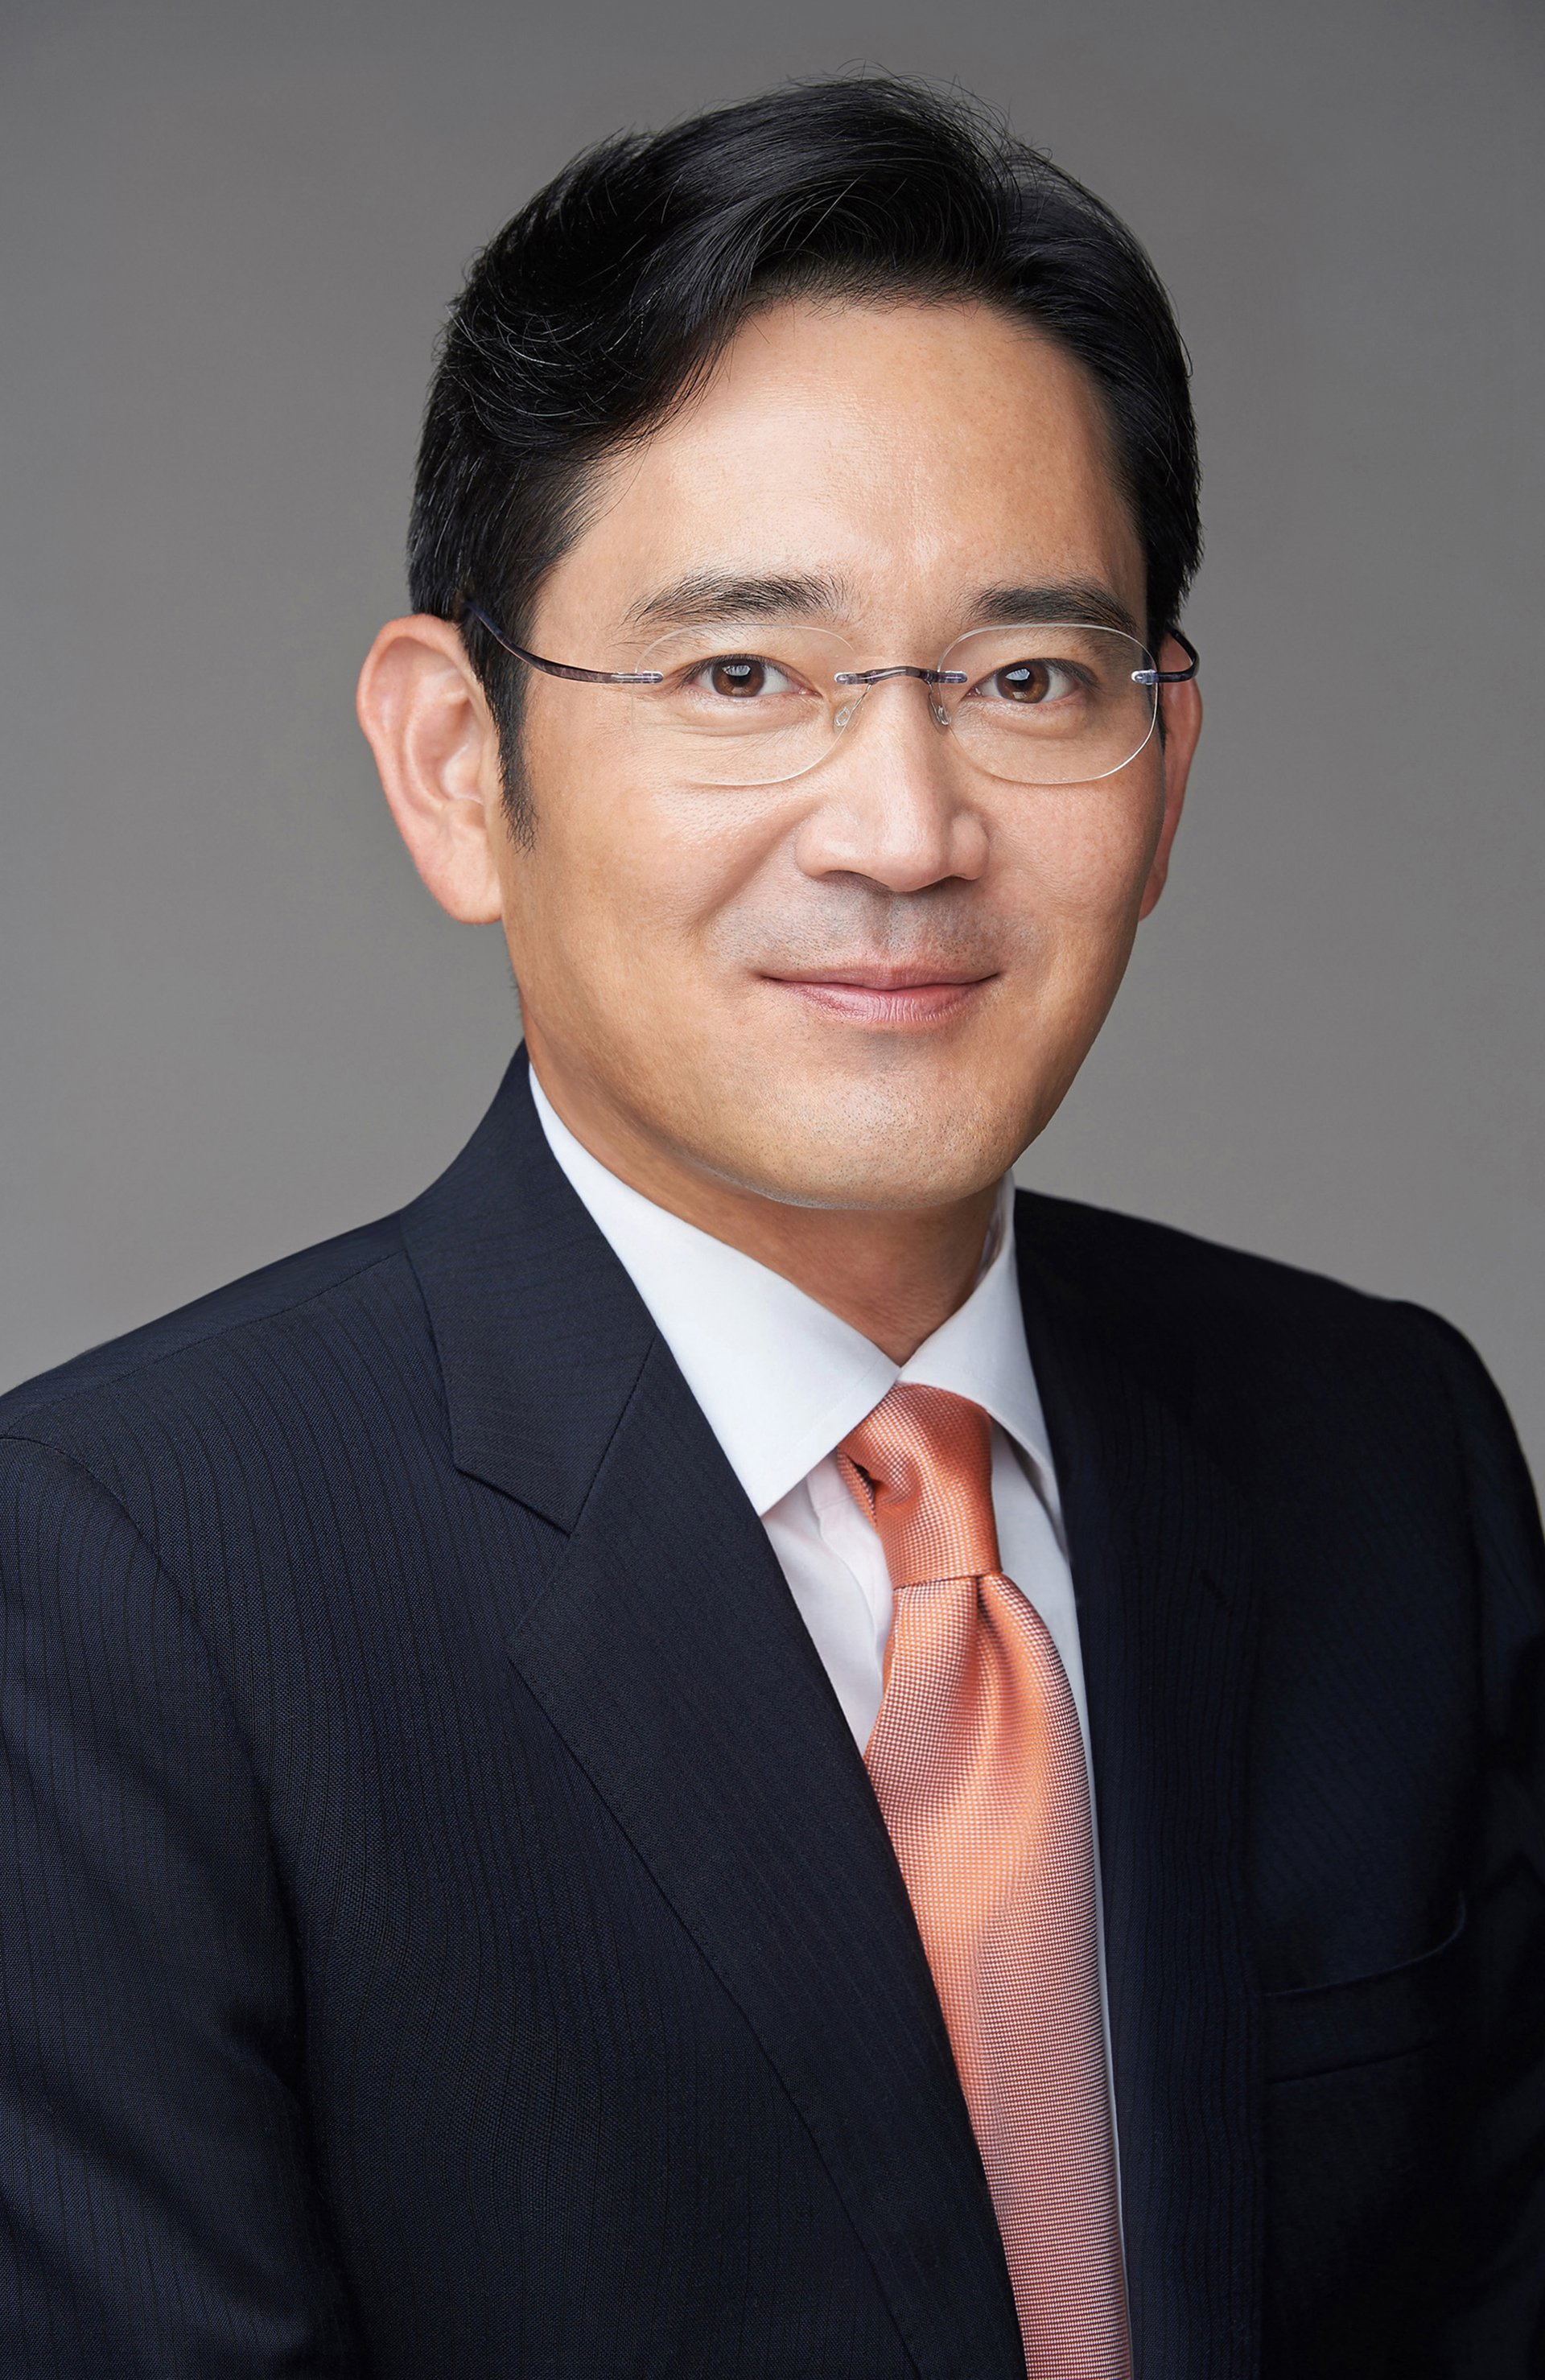 samsung s ceo lee kun hee s leadership It is interesting point that there must be something special managing skills by director boards of samsung, lee kun hee (samsung group ceo) has known for its leader who has specialized leadership 11 leadership.